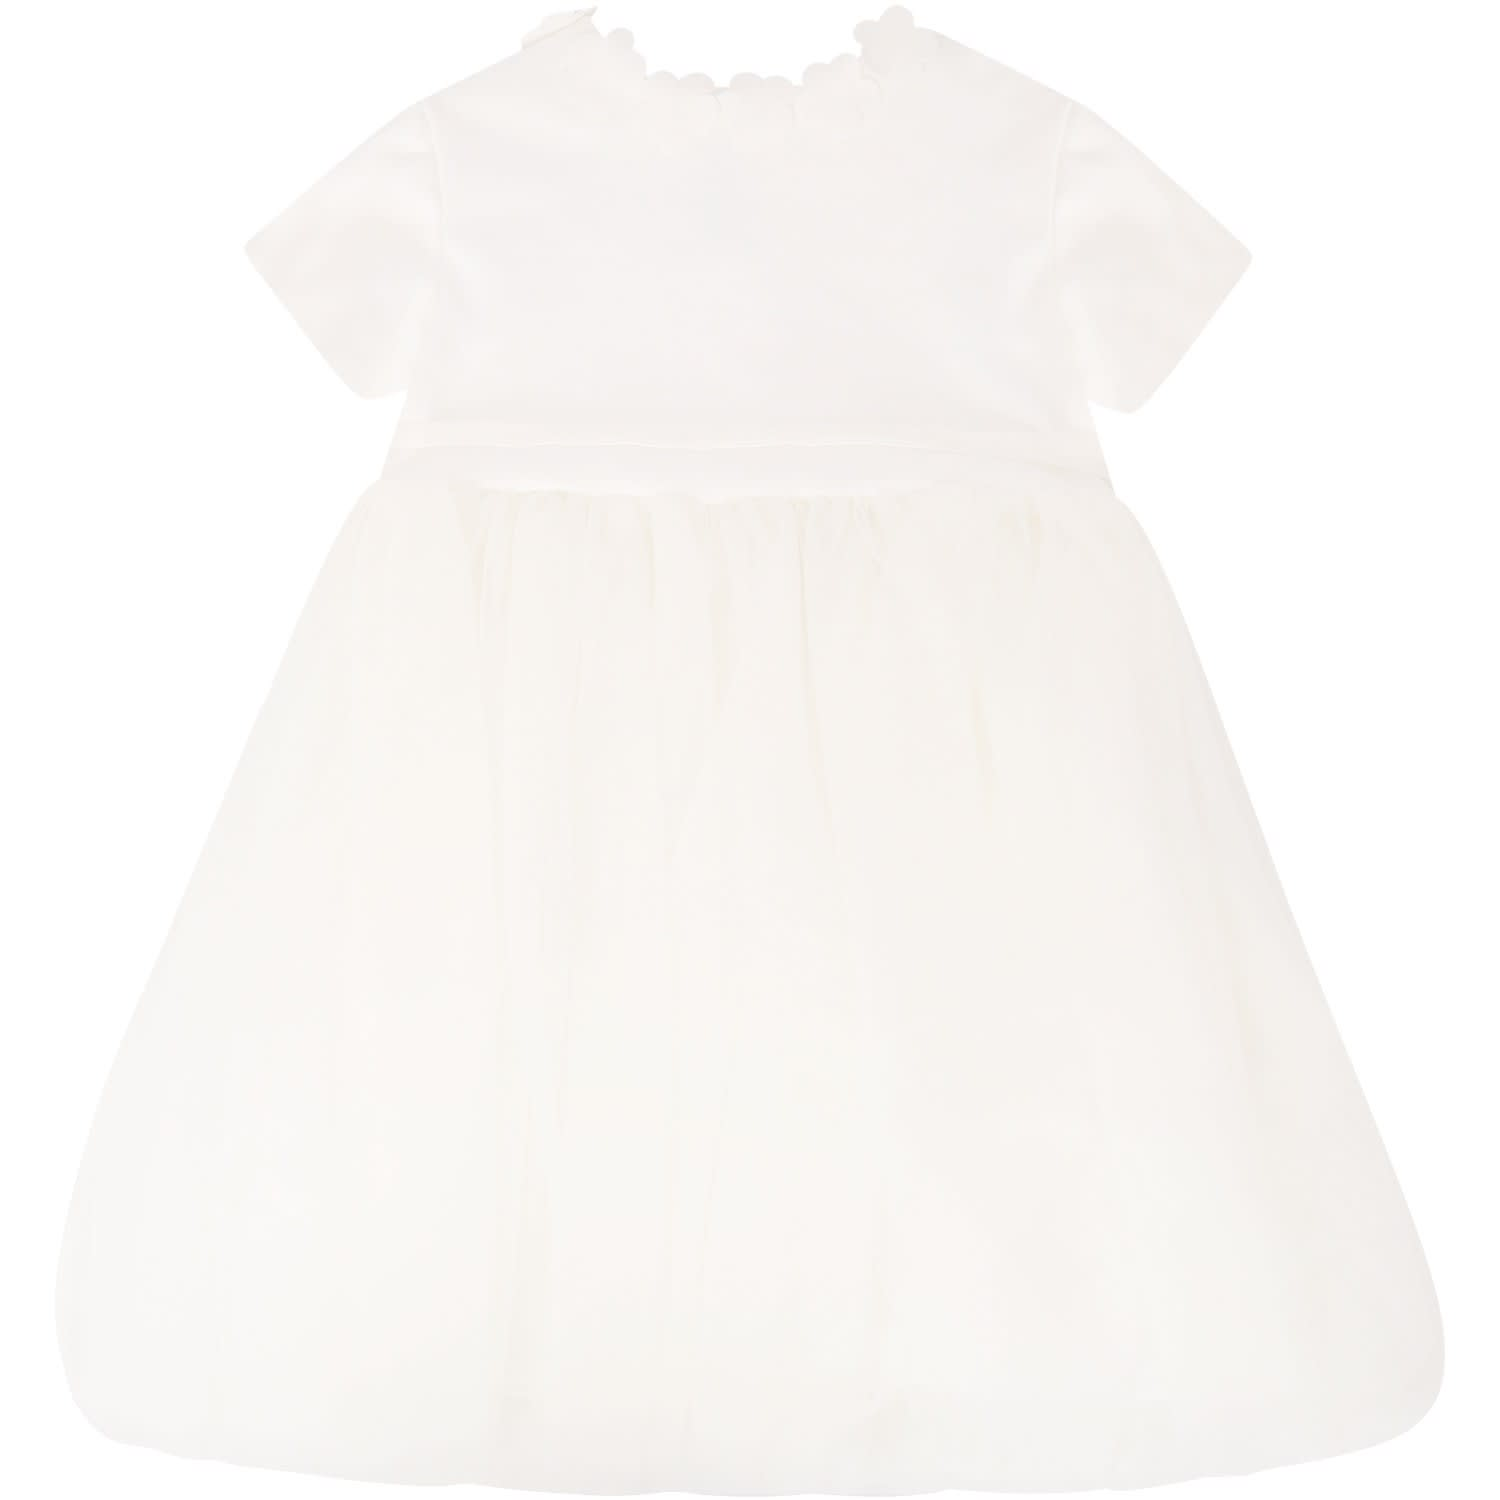 Buy Little Bear Ivory Dress With Flowers Applied online, shop Little Bear with free shipping